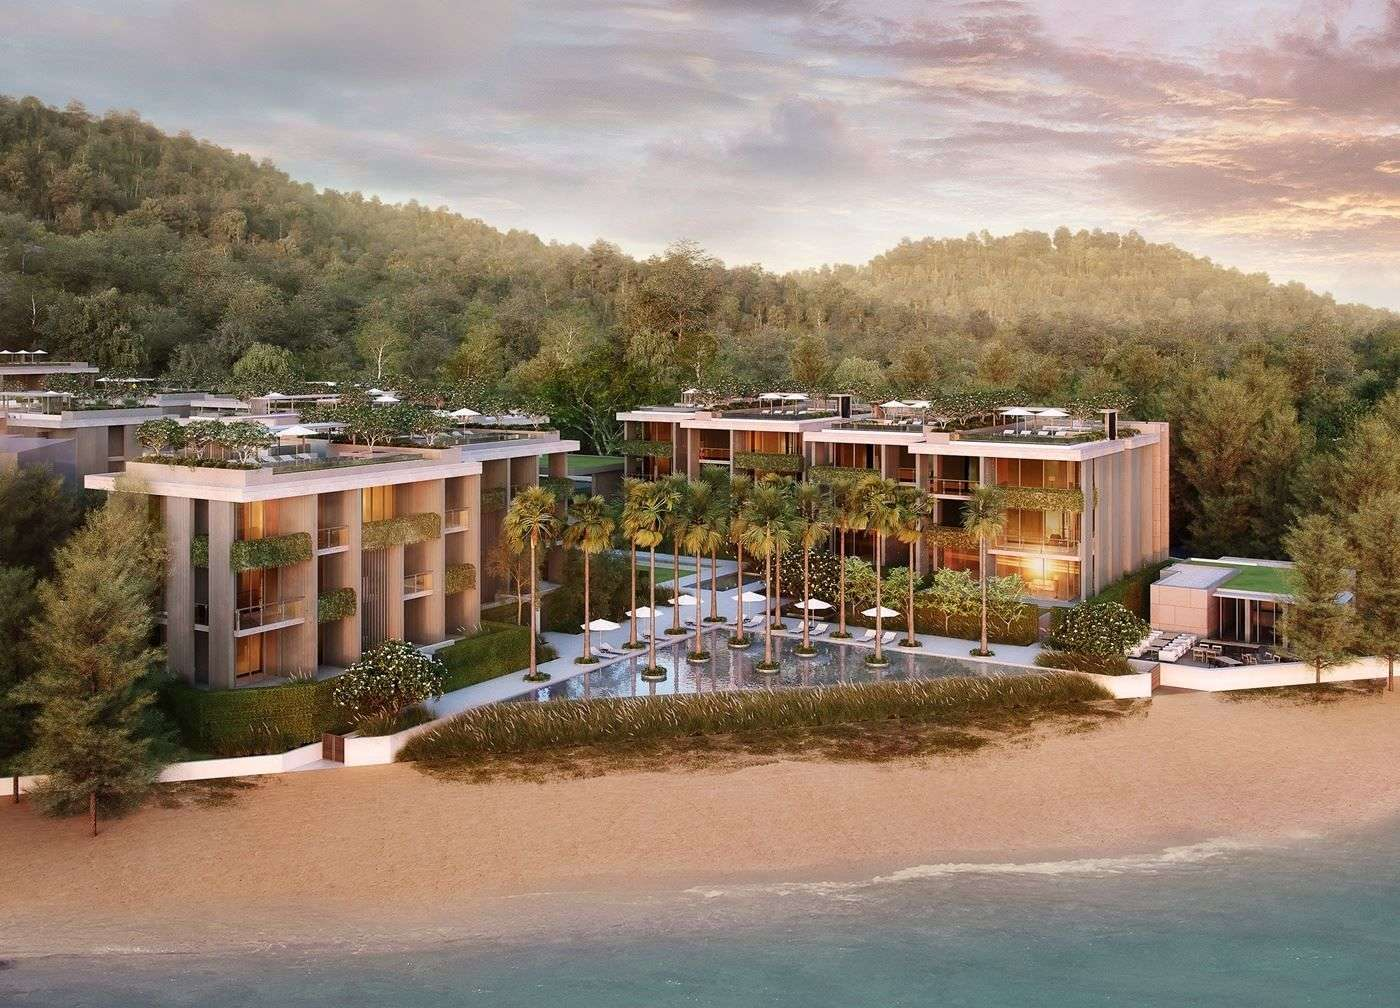 The Twinpalms Residences MontAzure will be one of the many components of the 454-rai masterplanned community on Phuket's west coast